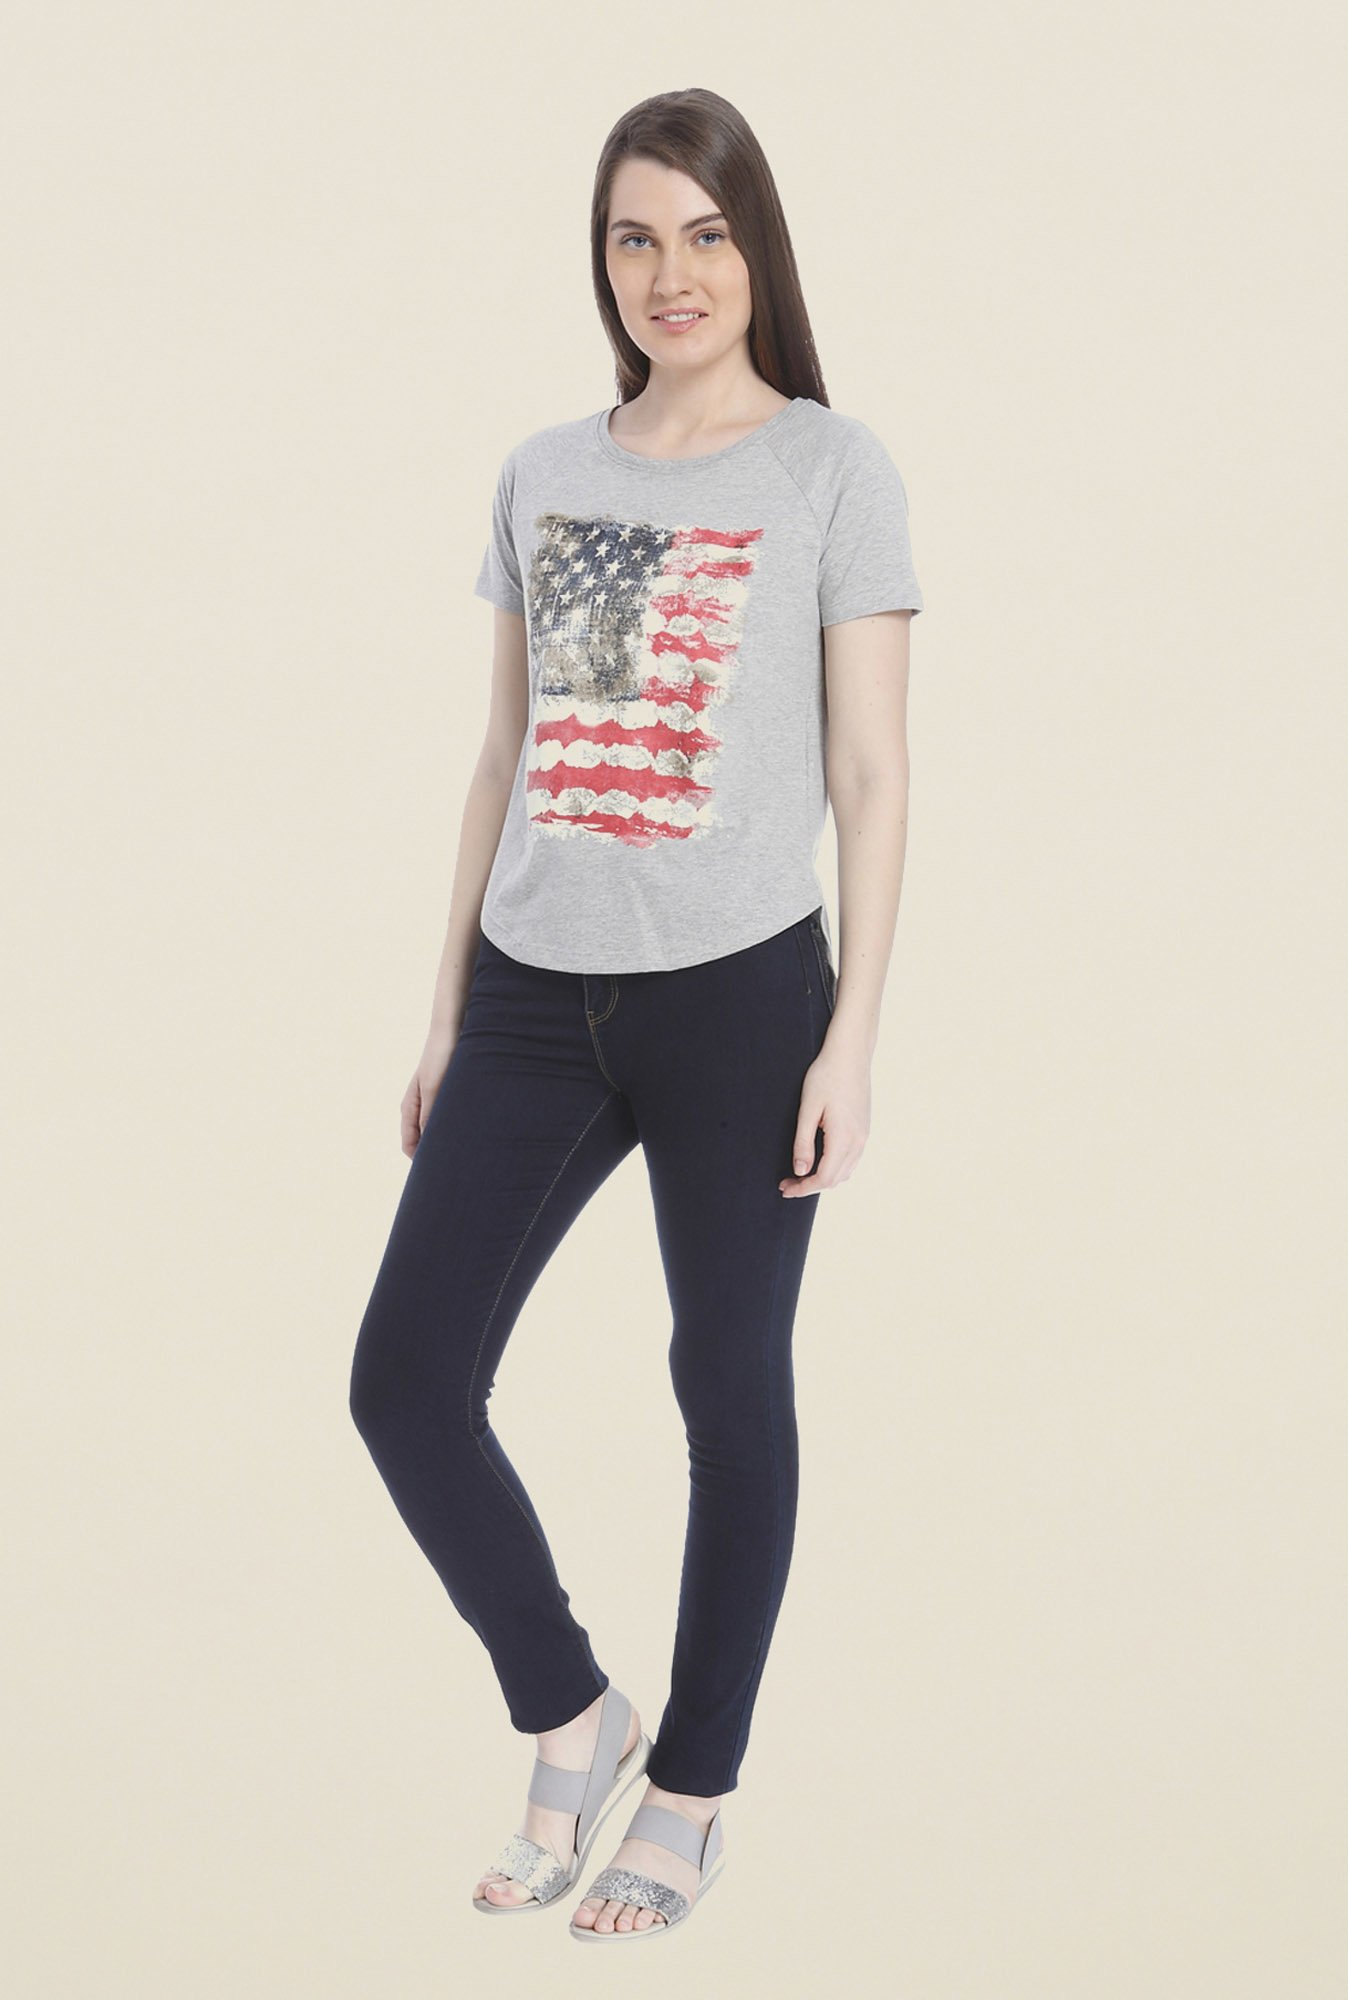 Vero Moda Grey Printed T-shirt